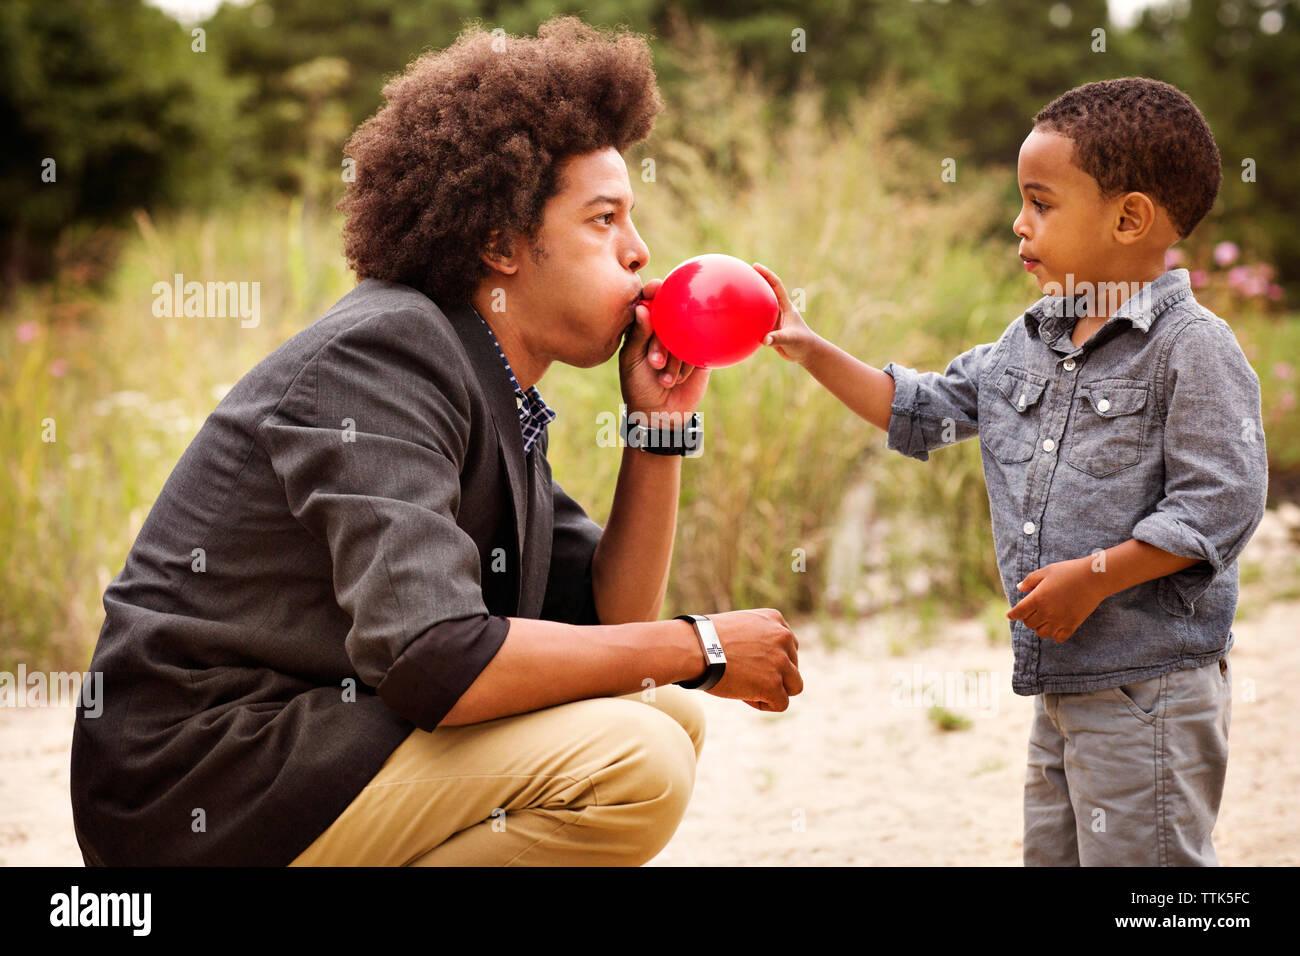 Man crouching while blowing balloon for brother - Stock Image